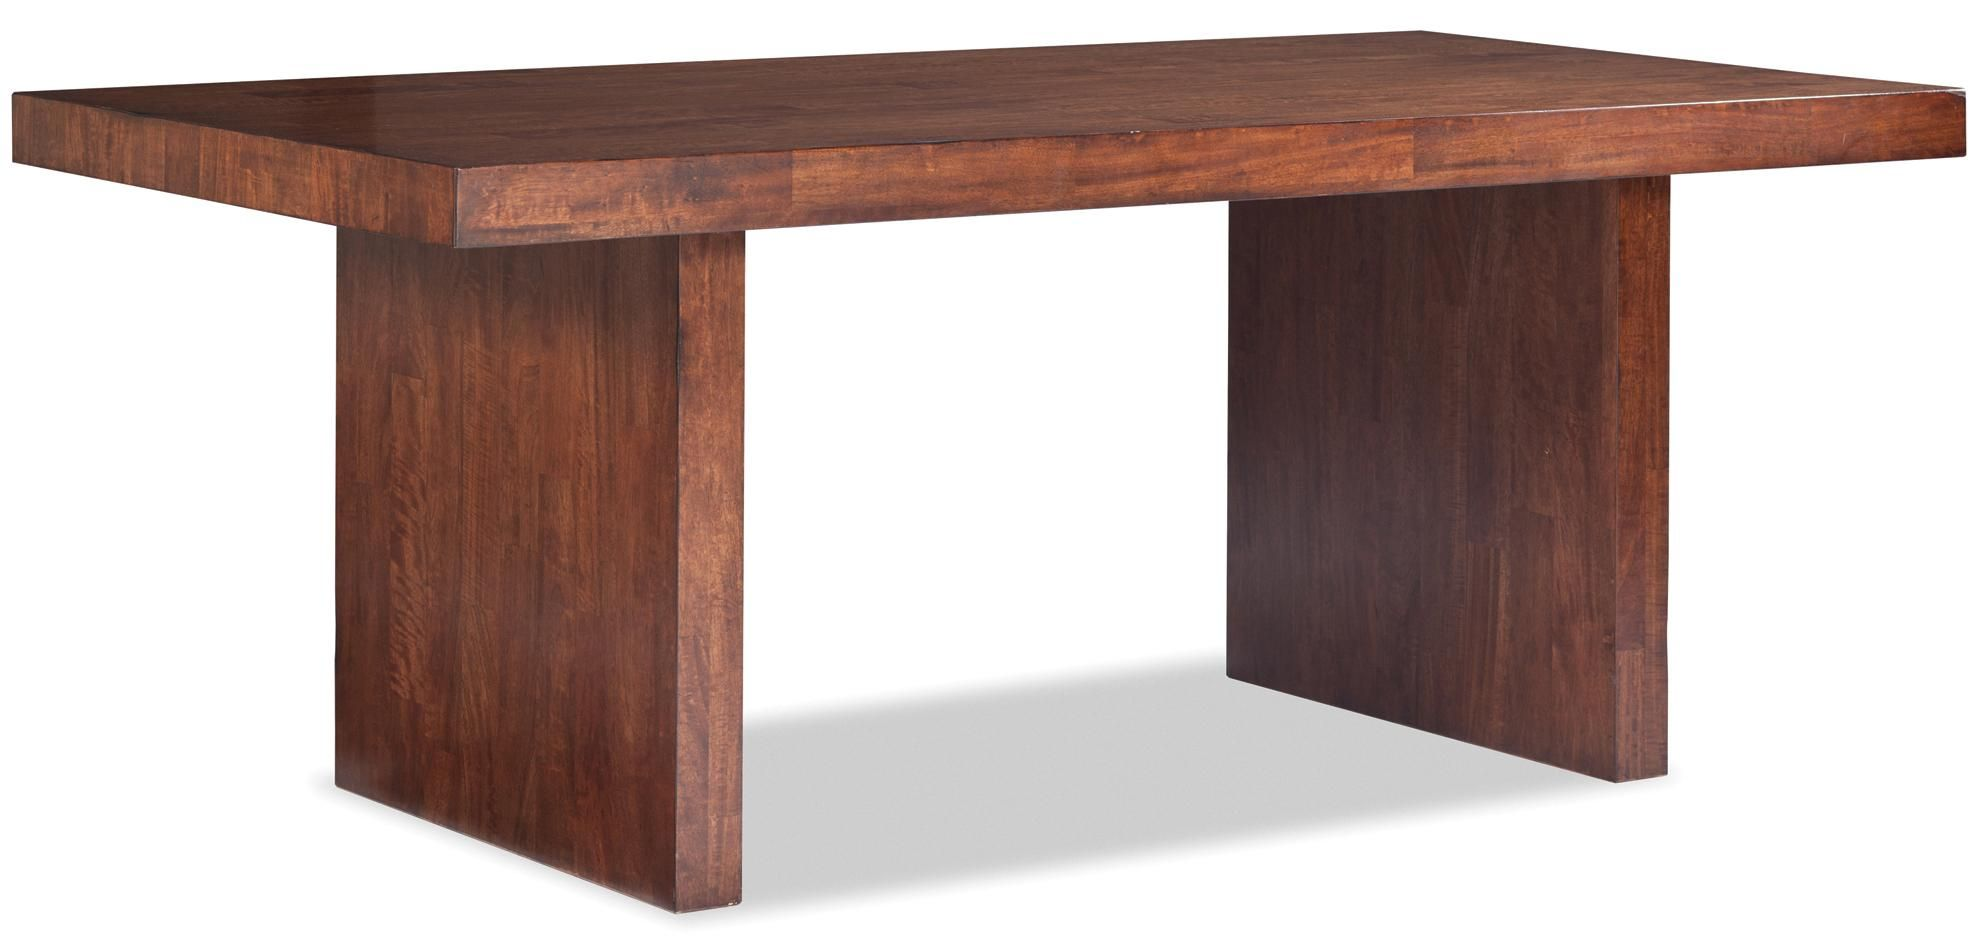 Rectangular Table With Double Pedestal Base In Cinnamon Finish